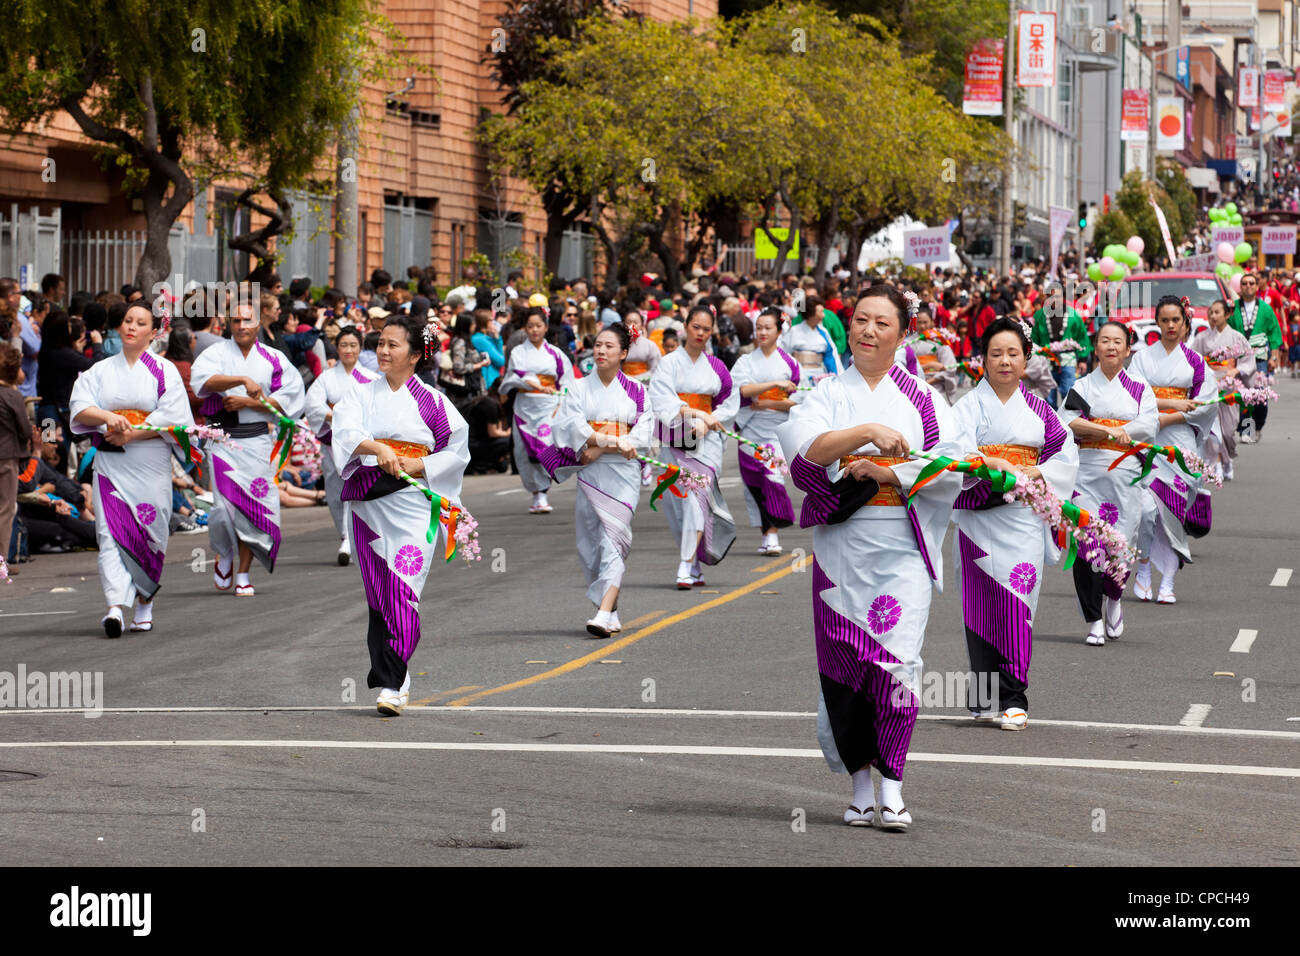 Japanese women performing traditional dance in a parade - Stock Image